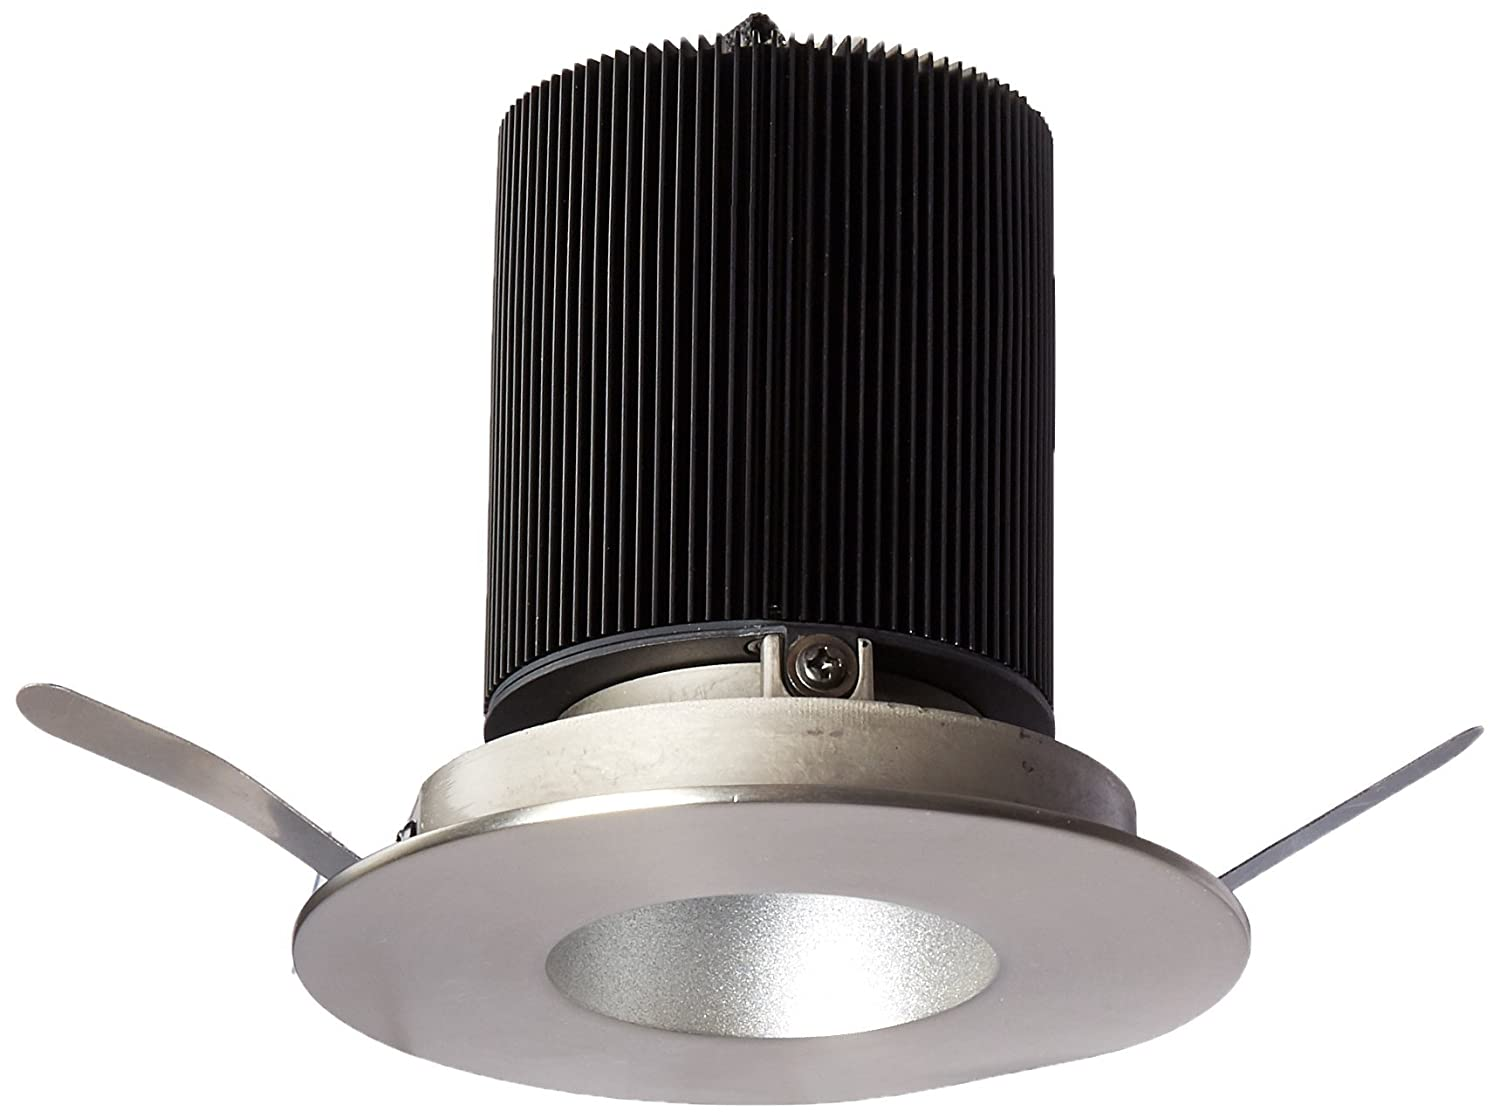 WAC Lighting HR-2LED-T109S-W-CB LED 2-Inch Recessed Downlight Open Round Trim with 15-Degree Beam Angle 3000K Copper Bronze Color Temperature